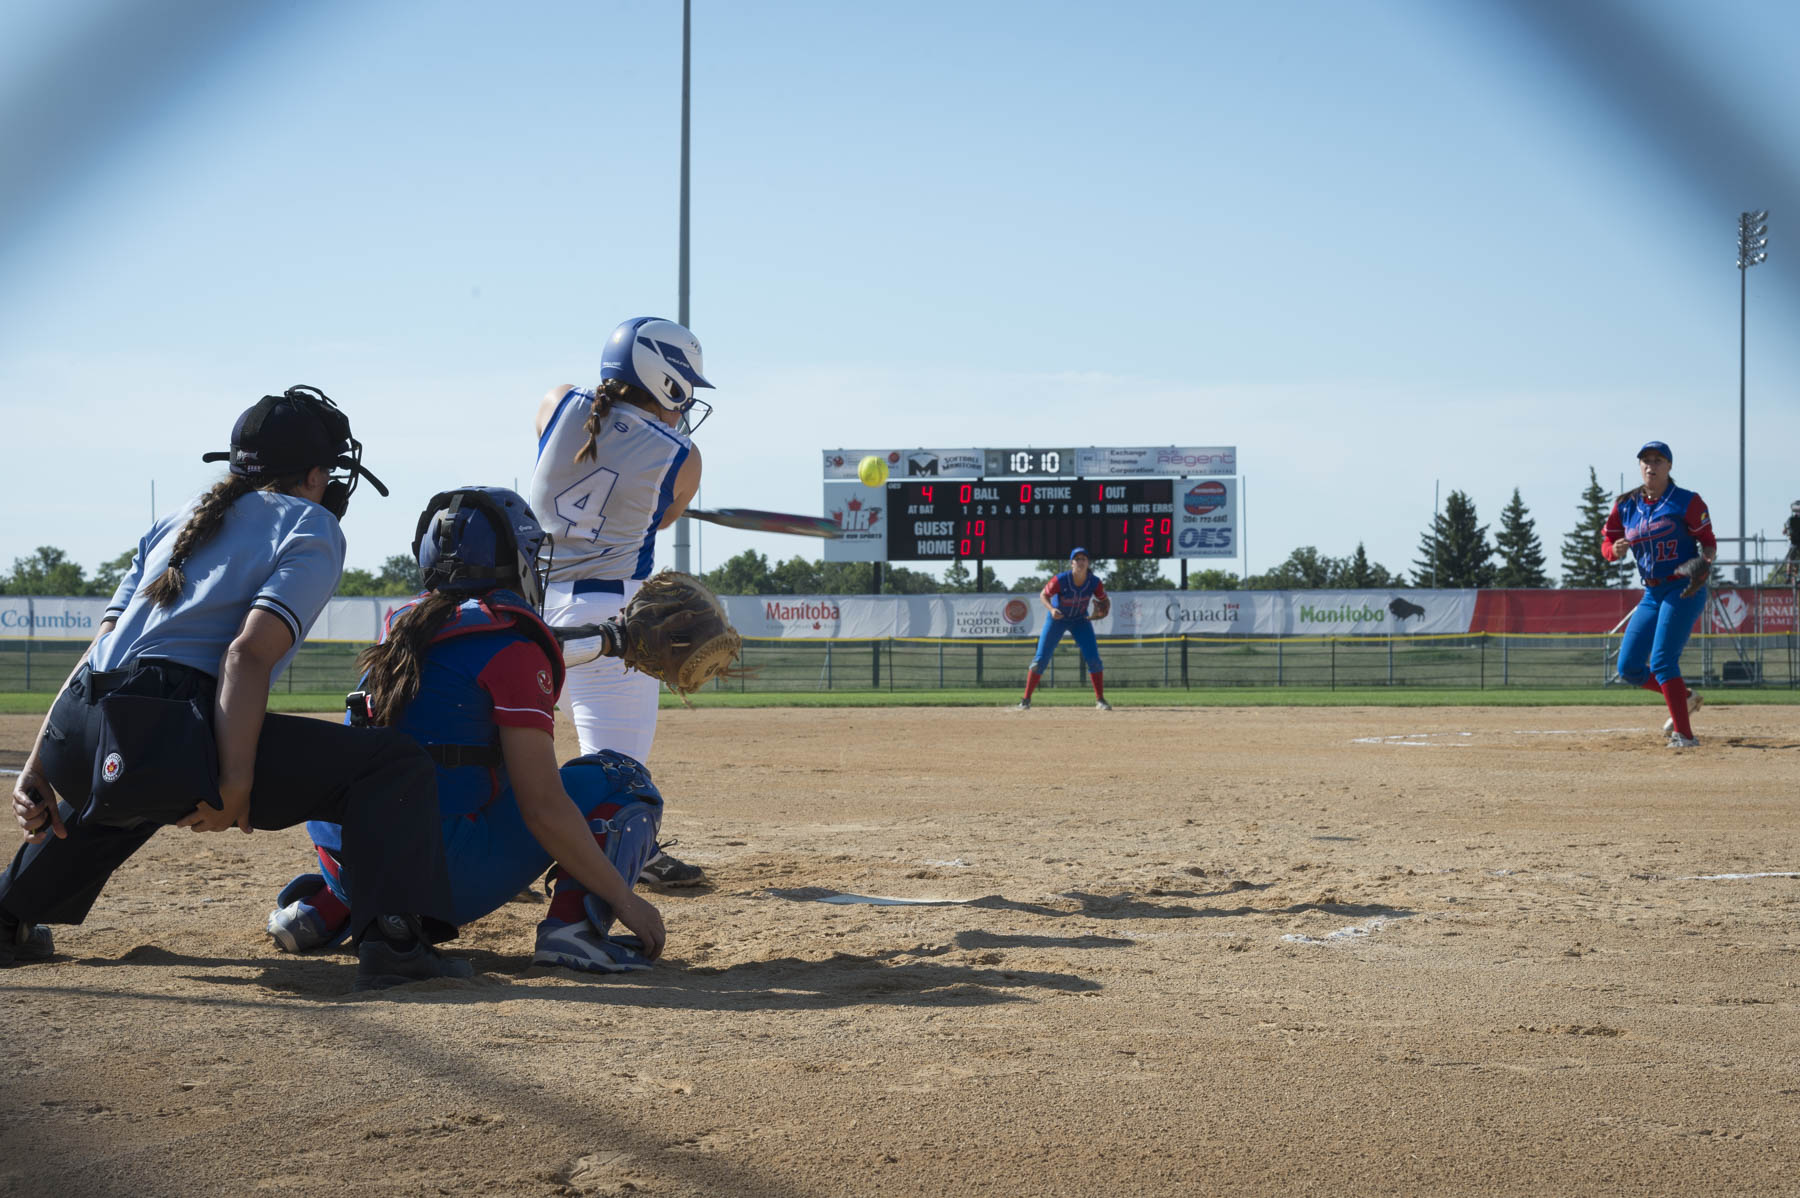 Alberta and British Columbia played for the gold medal. British Columbia won the game 10 to 3.